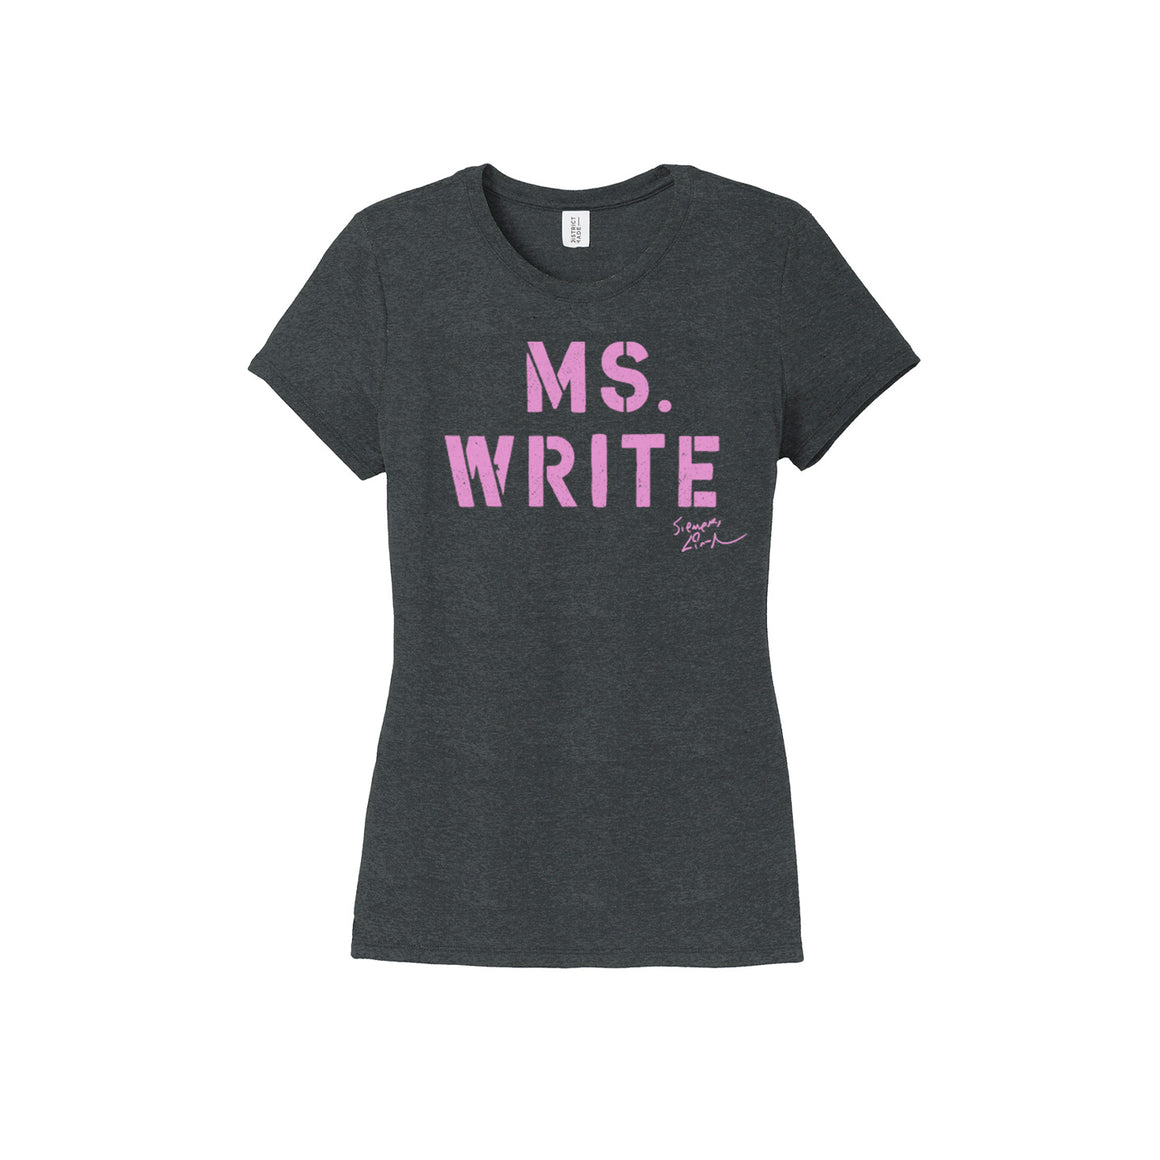 MS. WRITE - Ladies Crew - Black Frost